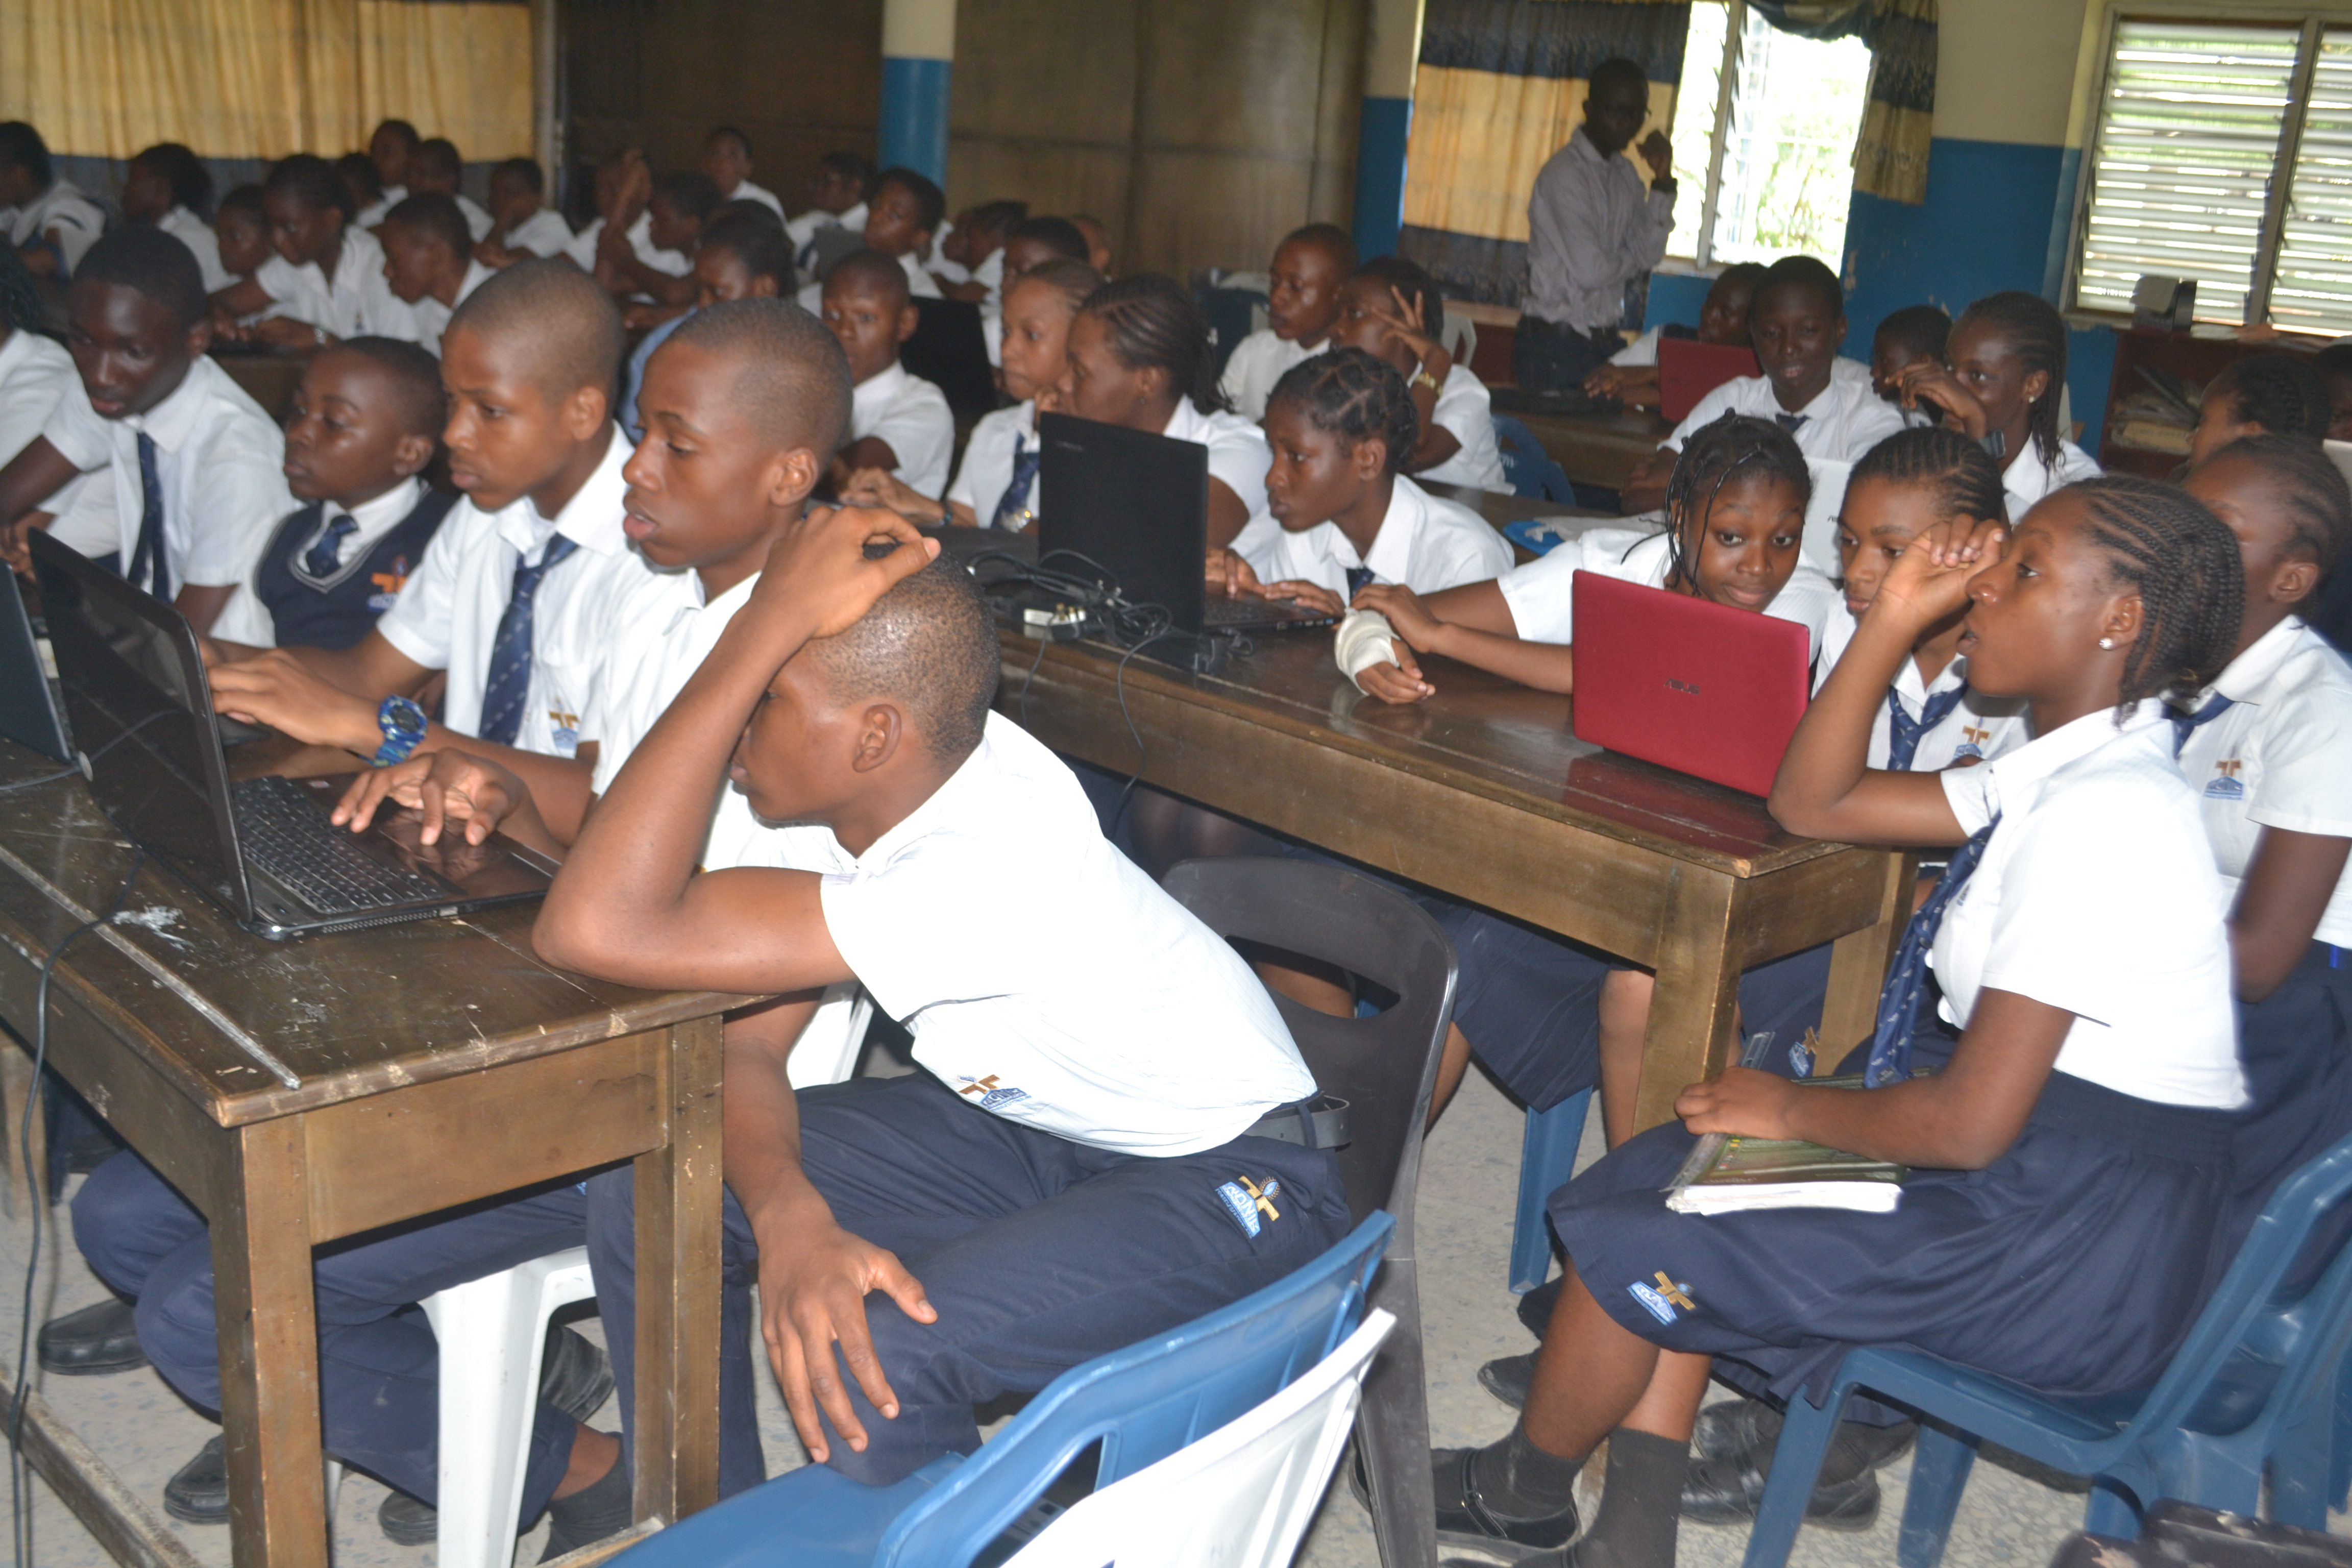 Making computer science accessible to more students in Africa